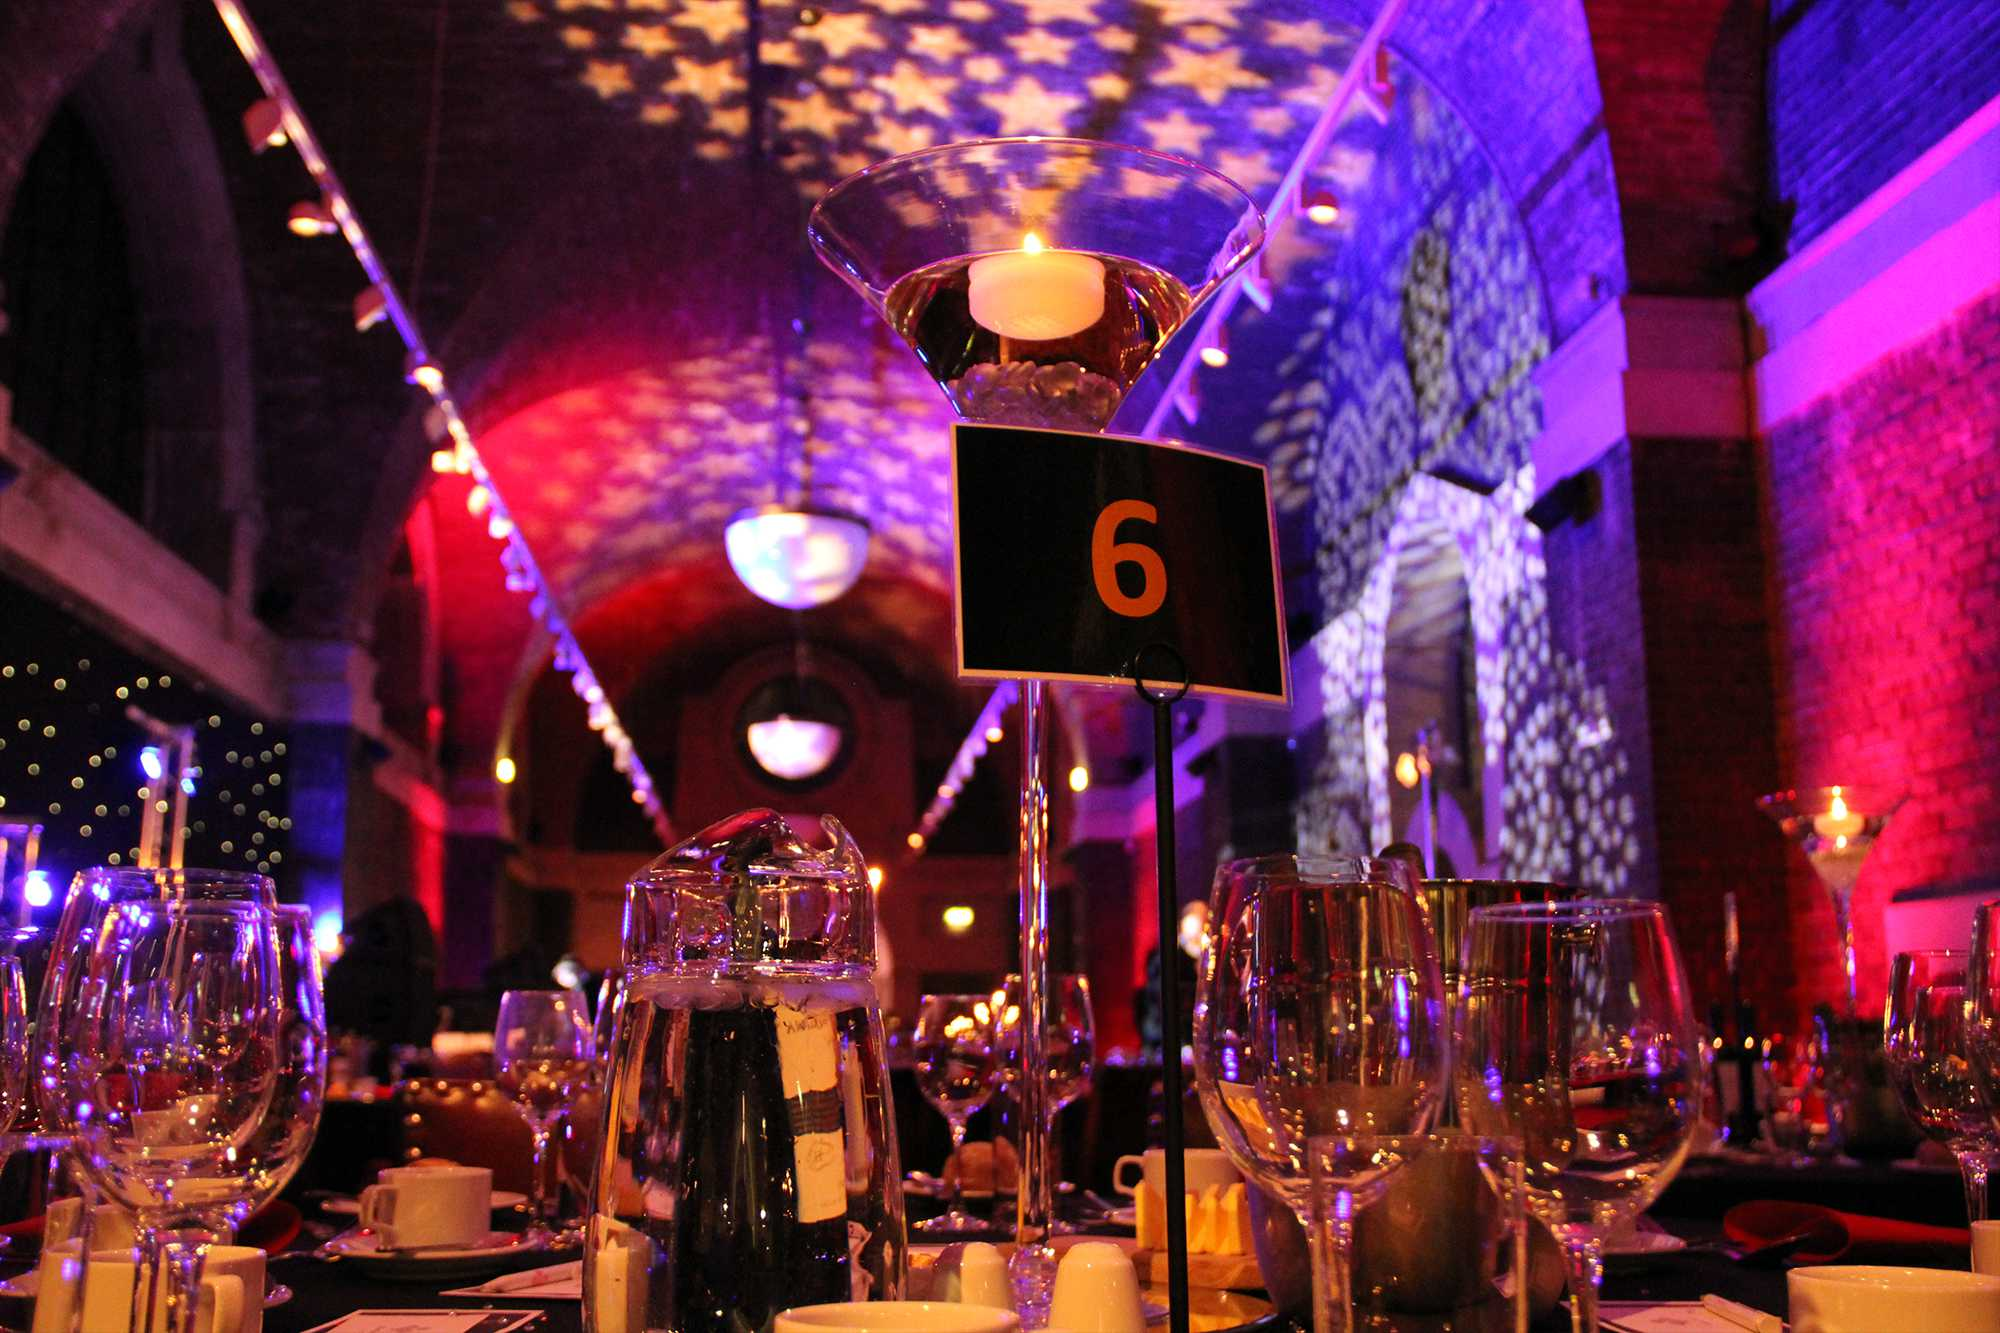 Gala Dinner Lighting & AV Production at Liverpool Cathedral Lutyens Crypt